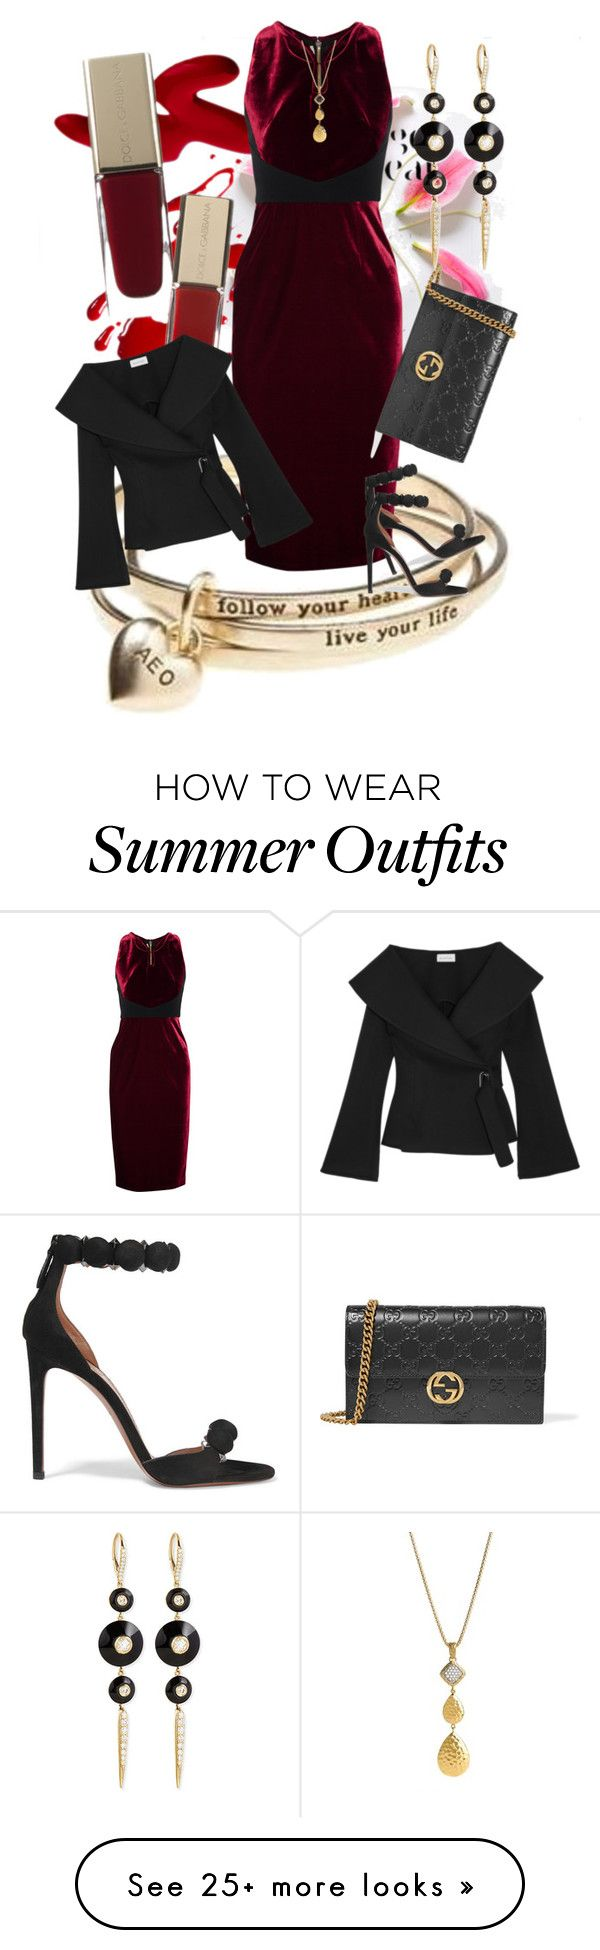 """""""Turning Heads"""" by rita257 on Polyvore featuring American Eagle Outfitters, Roland Mouret, Beaufille, Gucci, Alaïa, Maria Canale and John Hardy"""